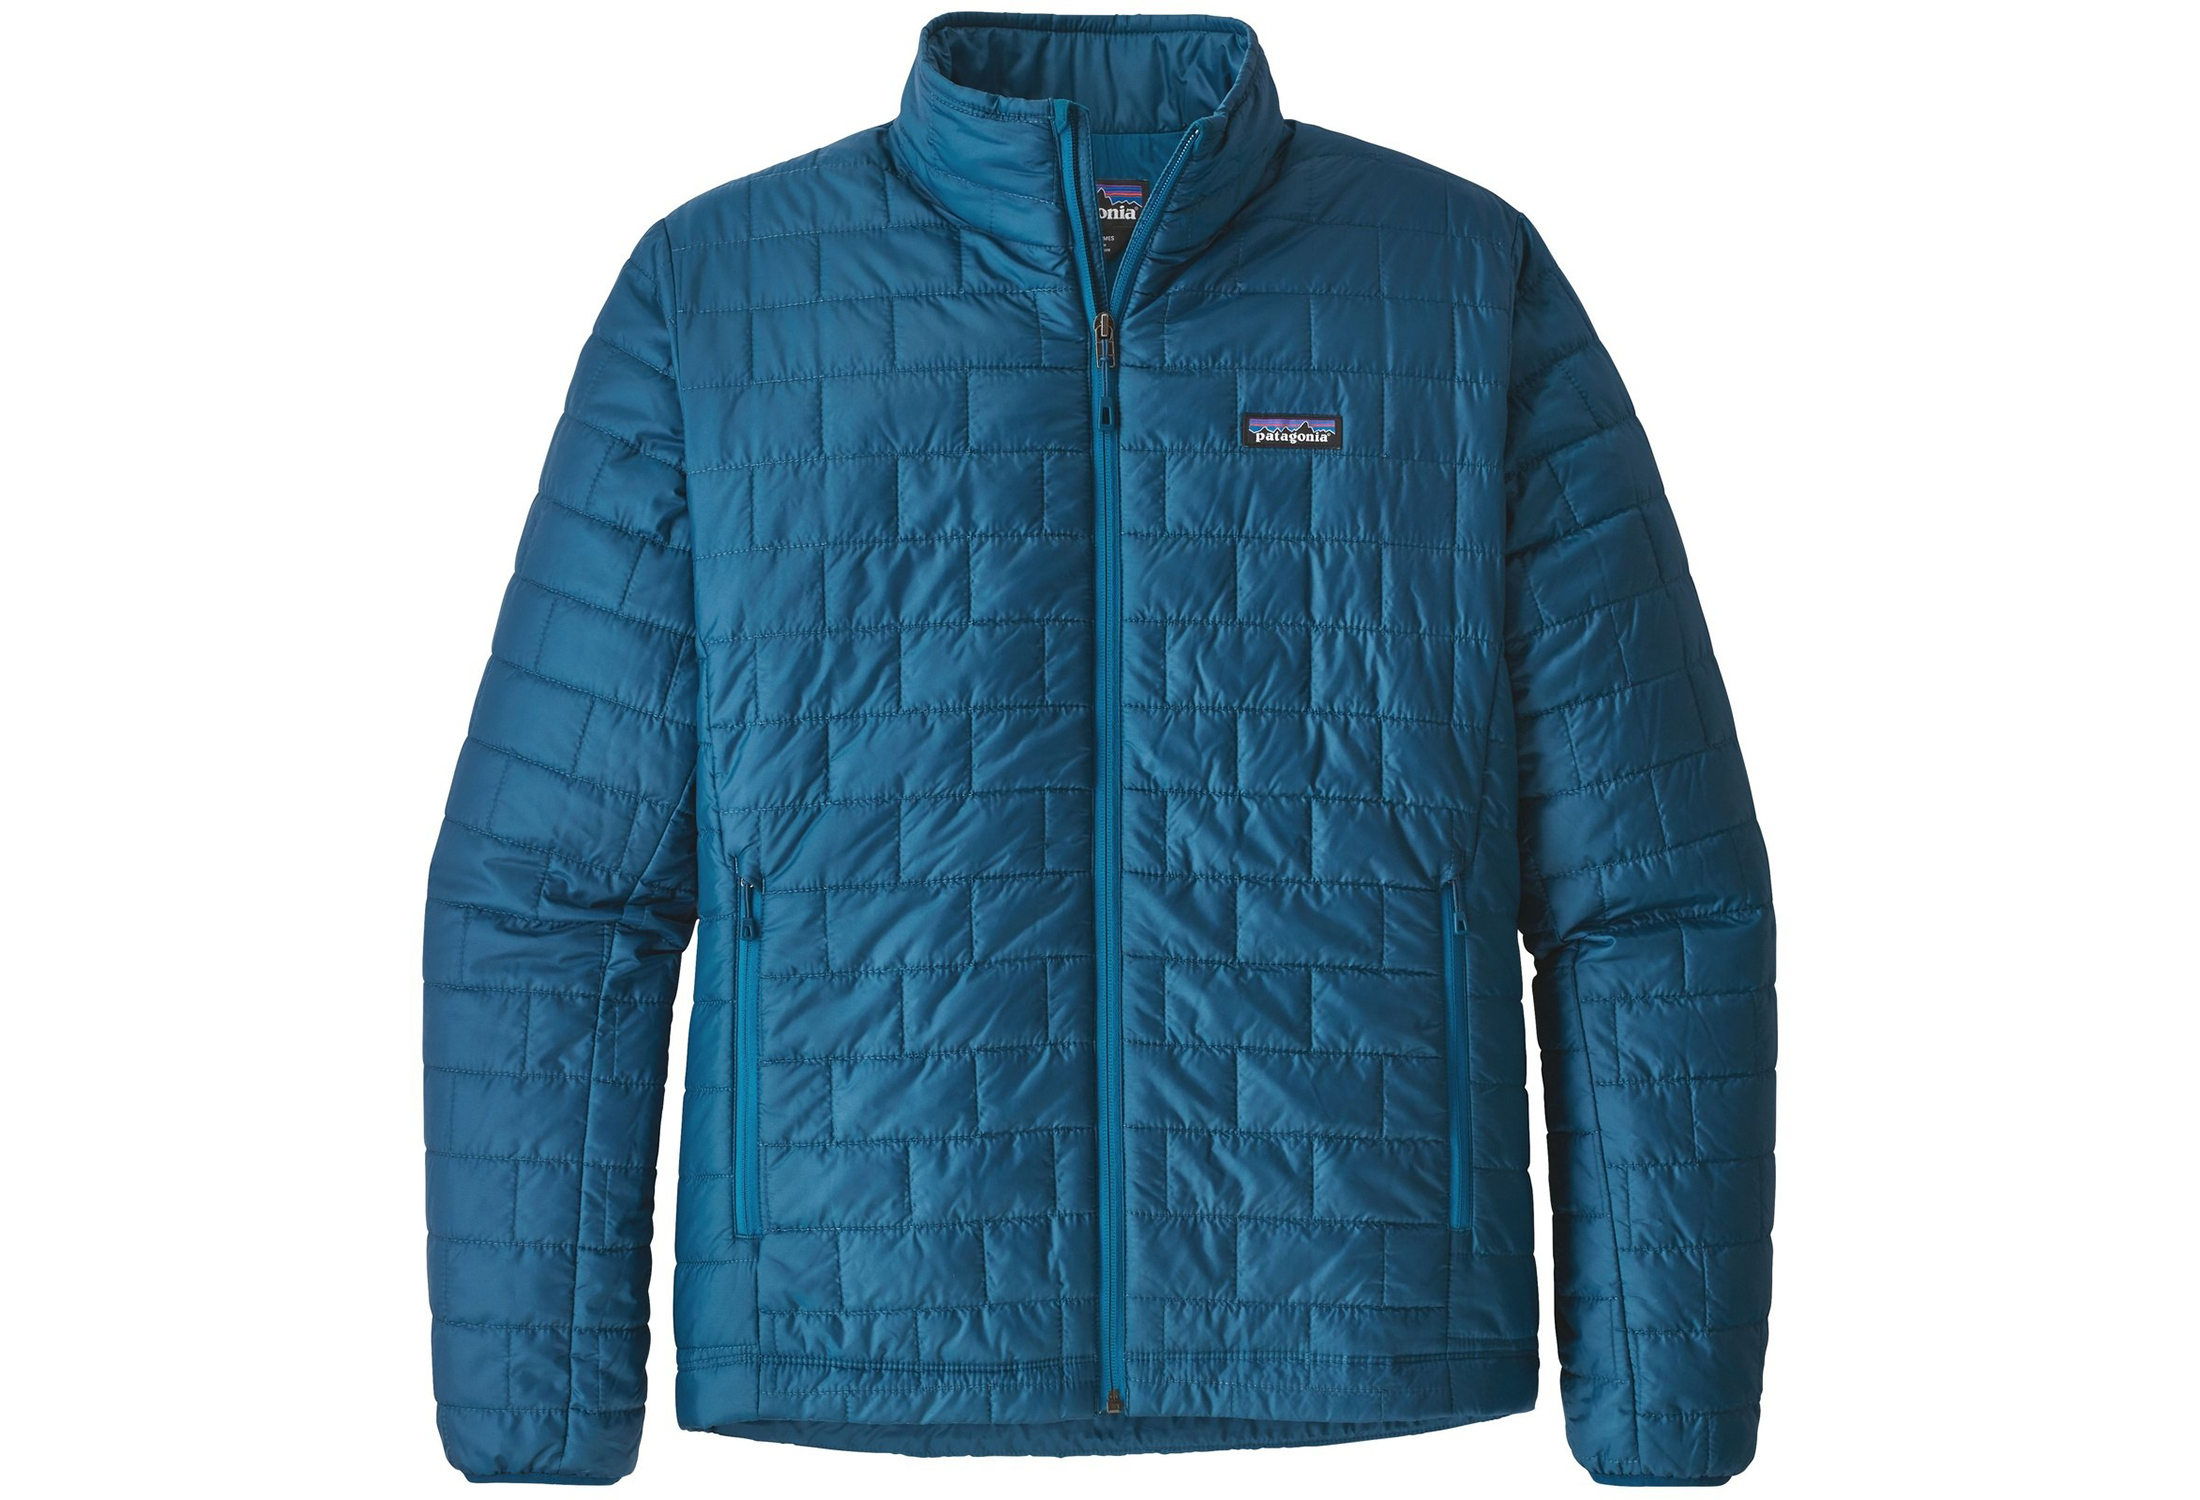 Patagonia Nano Puff mens blue jacket against white background